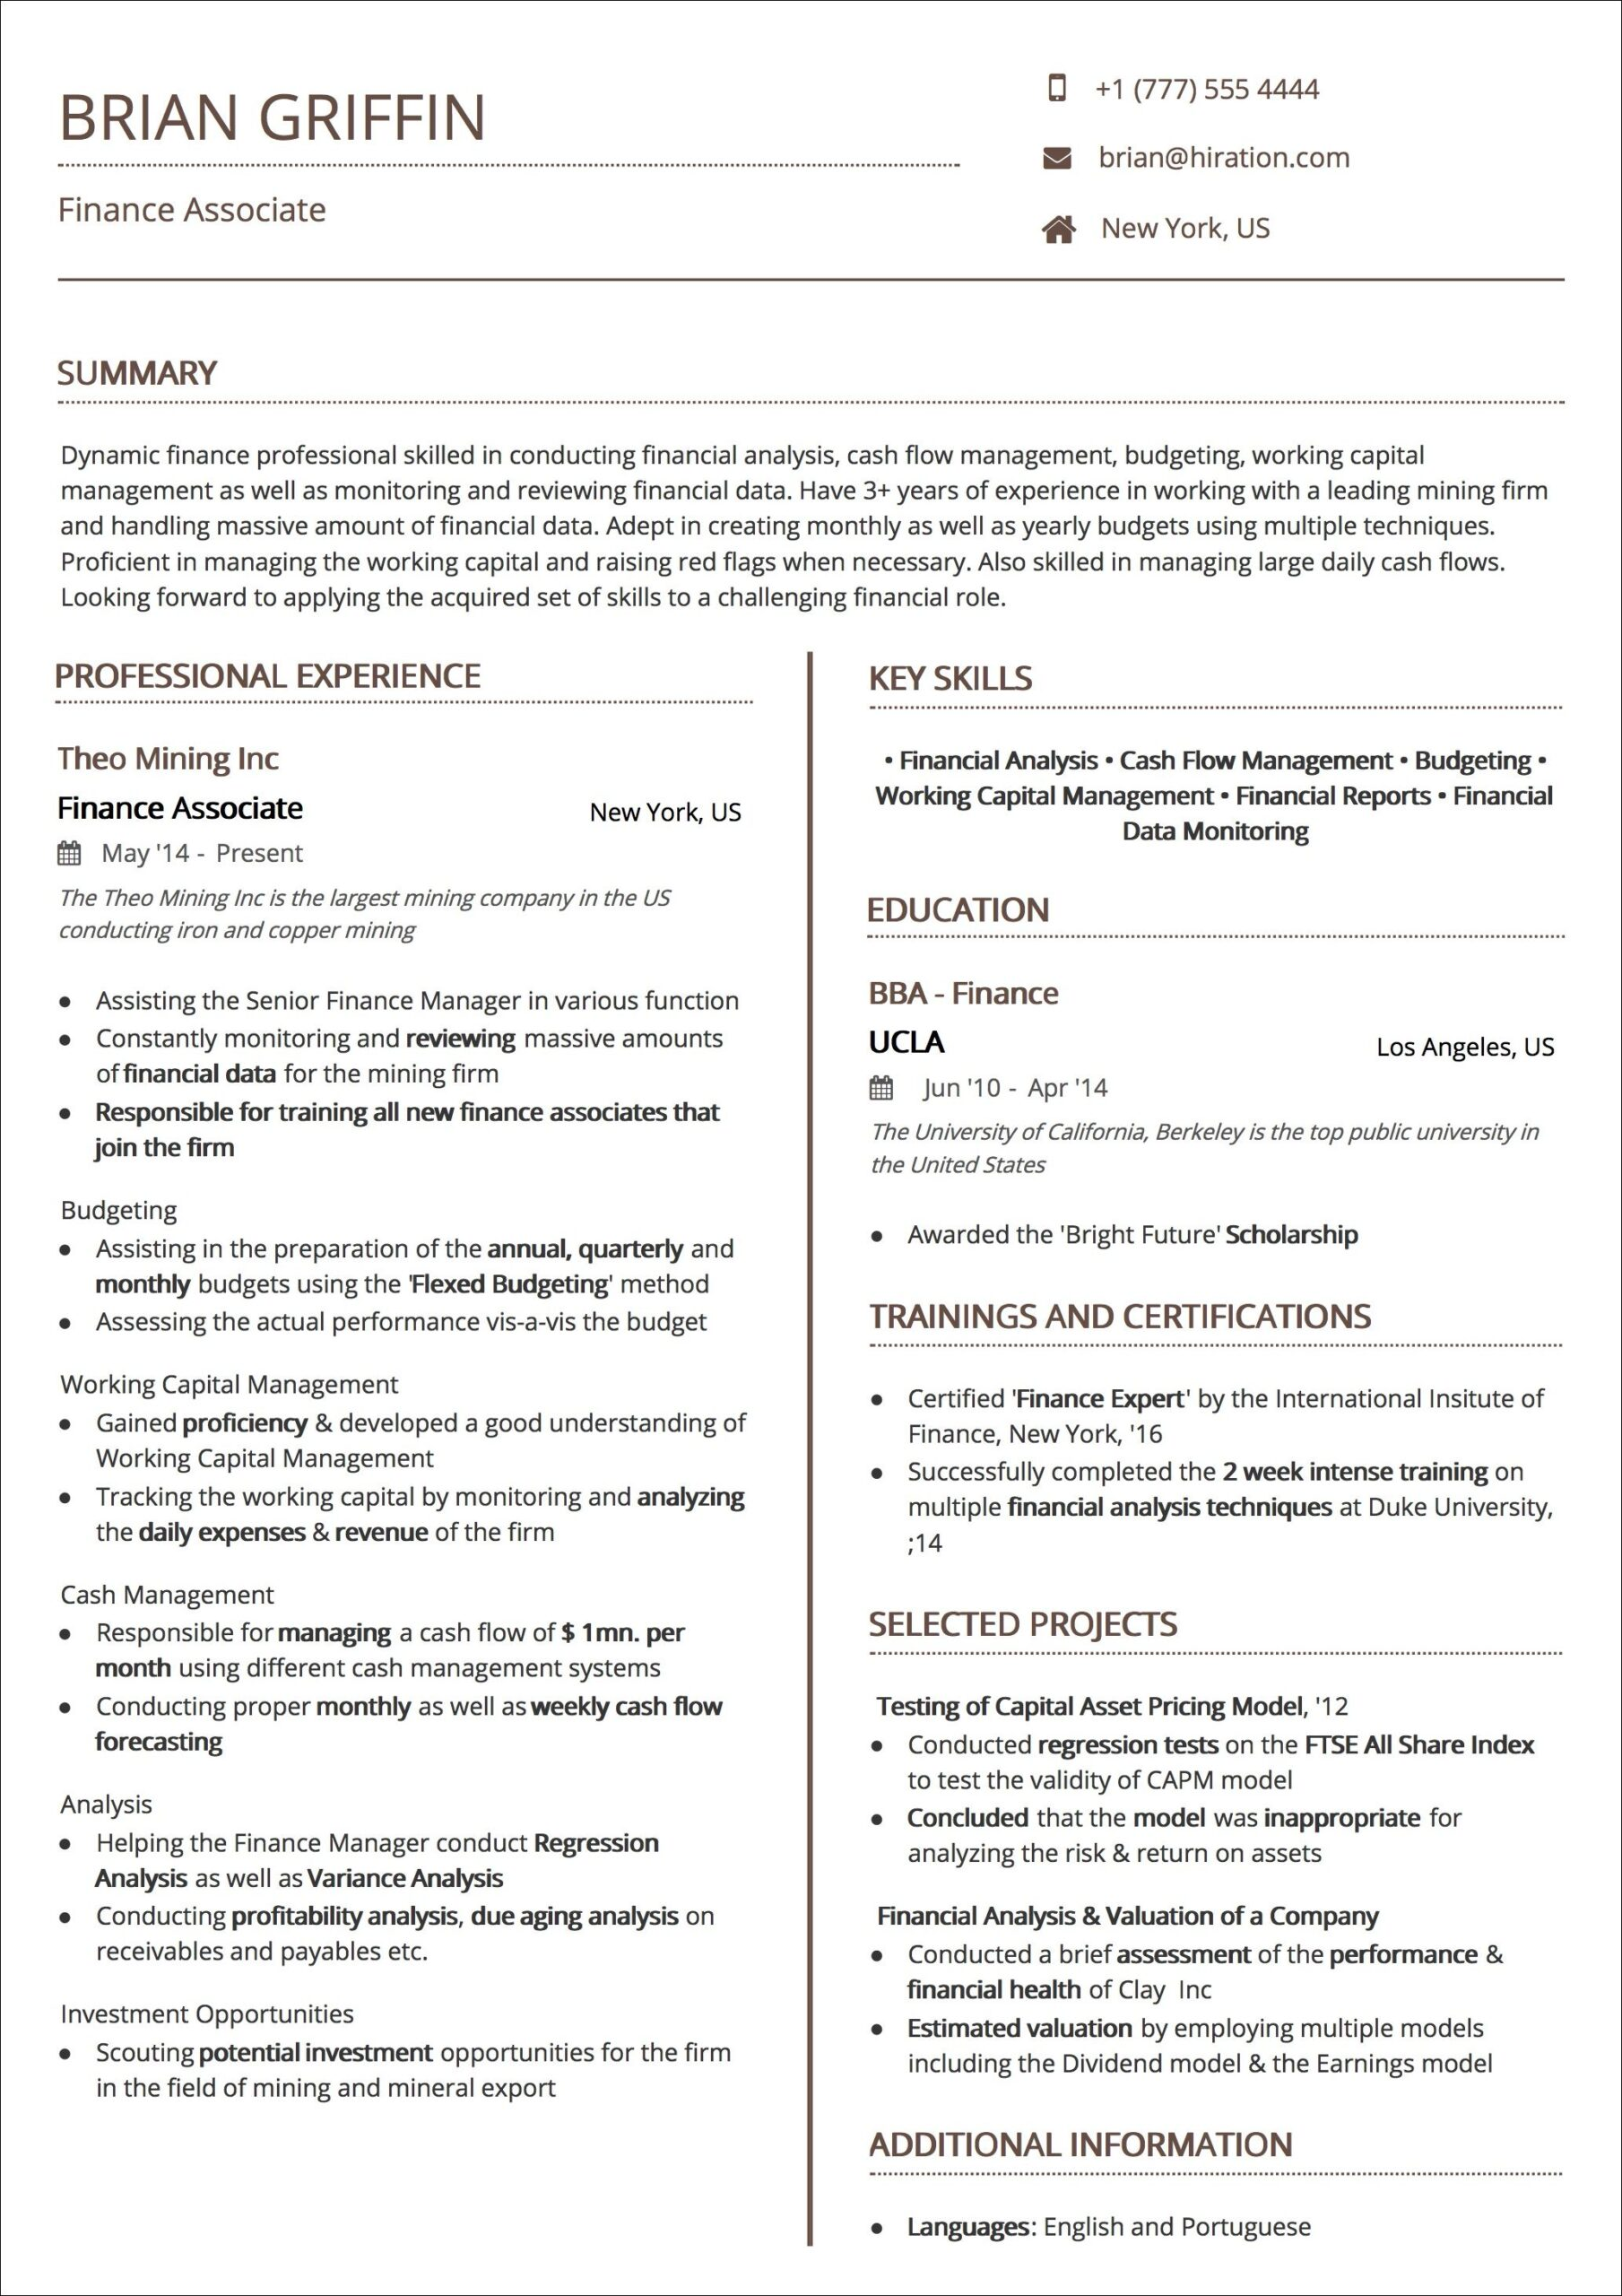 resume templates the guide to choosing best template ats friendly free uniform security Resume Ats Friendly Resume Template Free